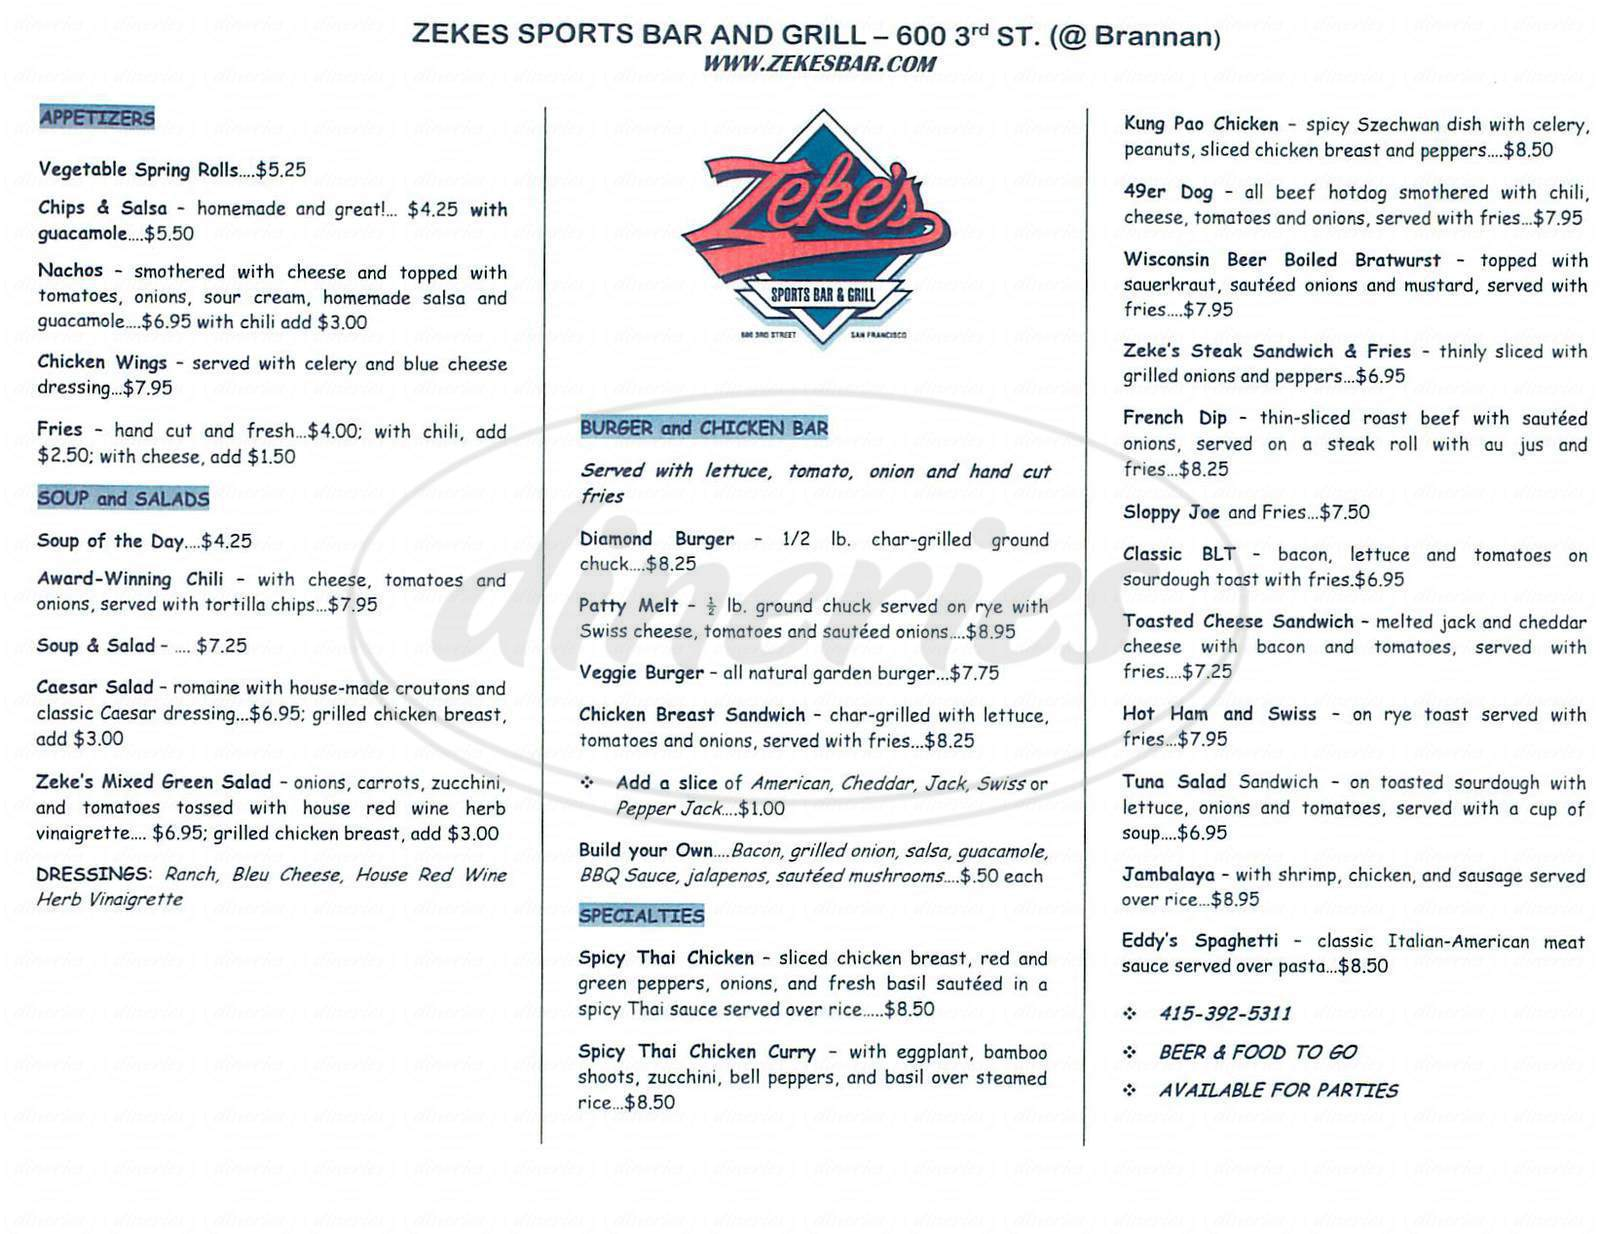 menu for Zekes Sports Bar